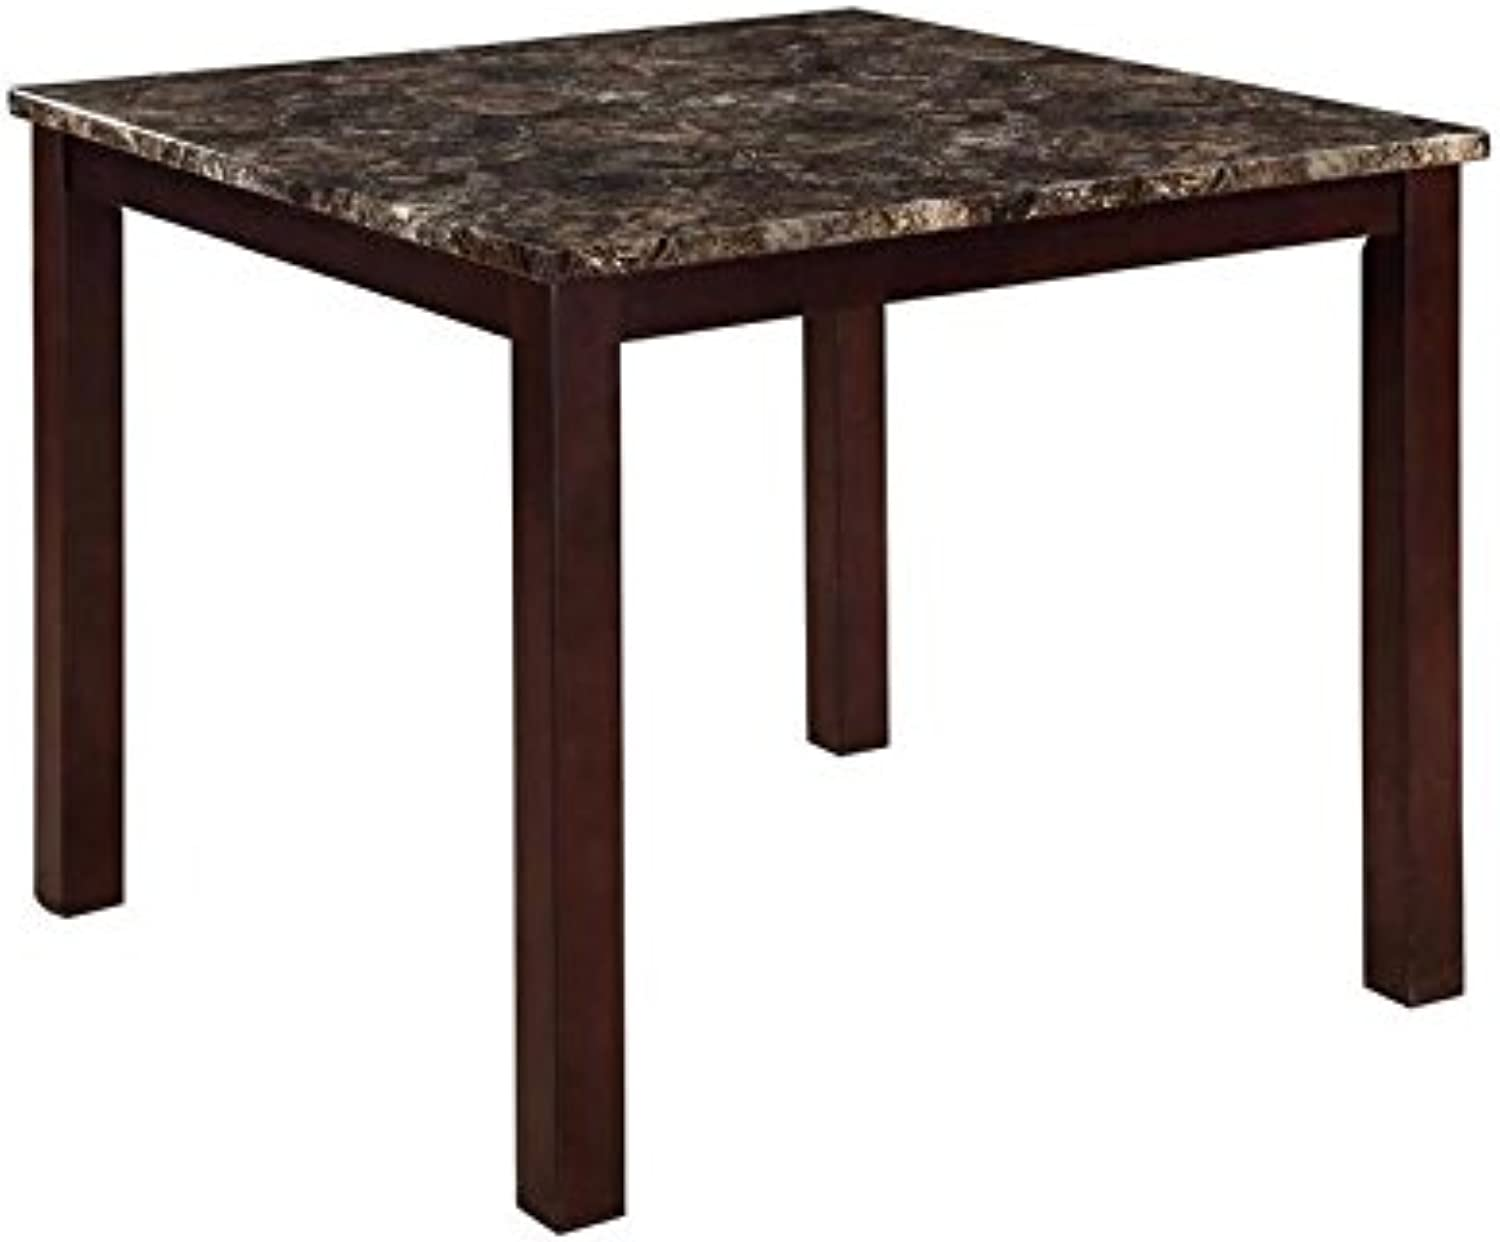 Benzara BM160853 End Table Brown